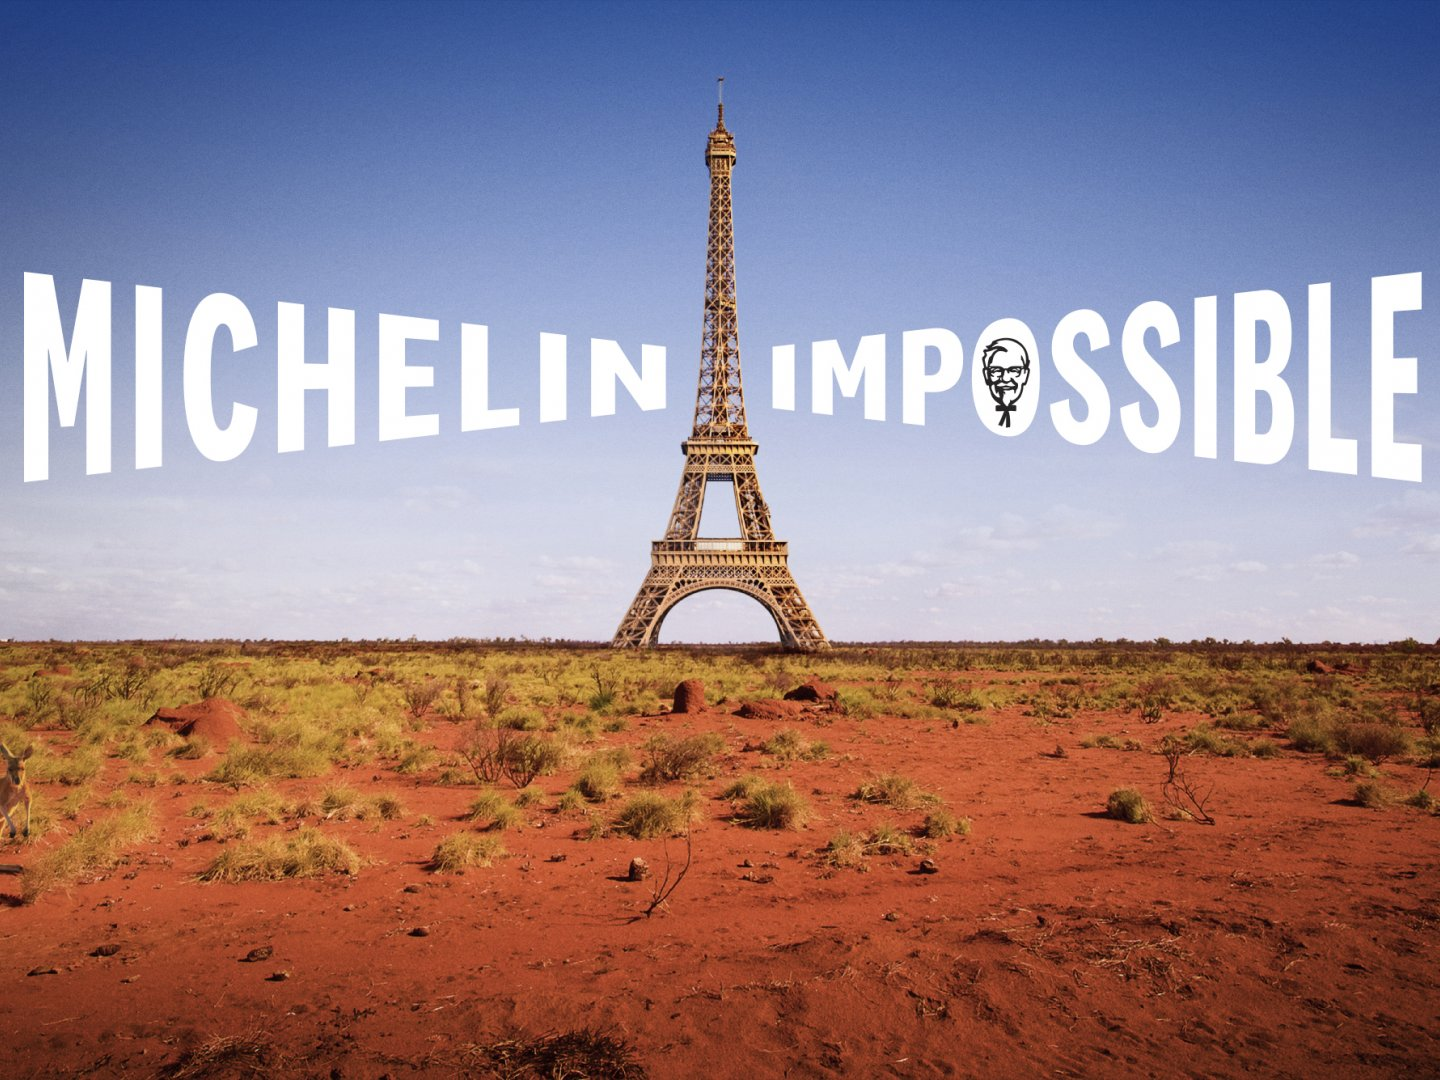 Michelin Impossible Thumbnail